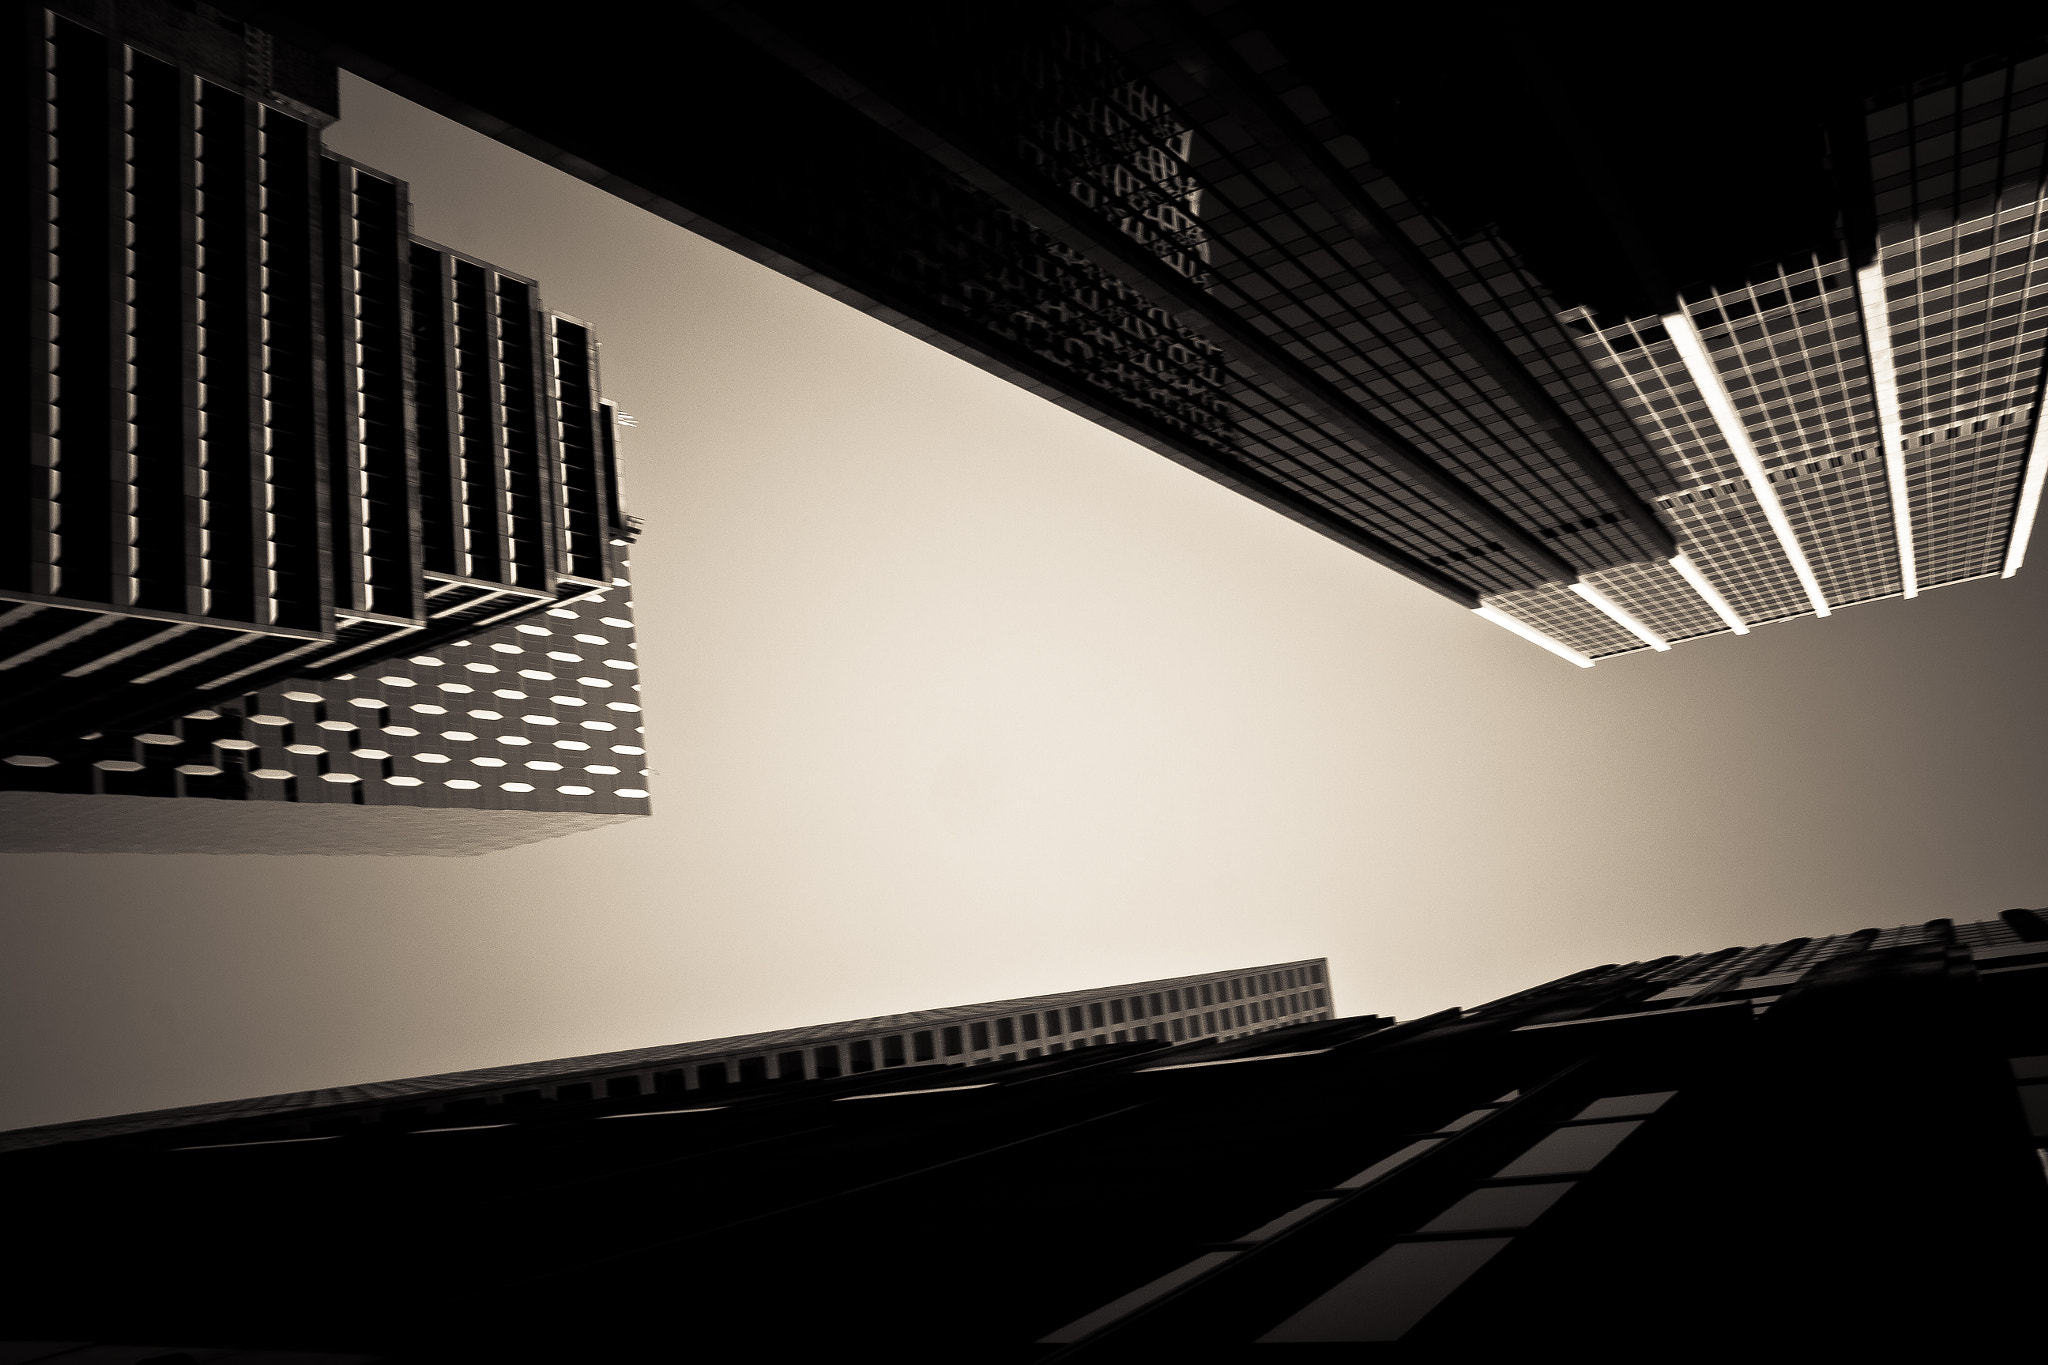 Photograph Offices by Denis Caeyers on 500px